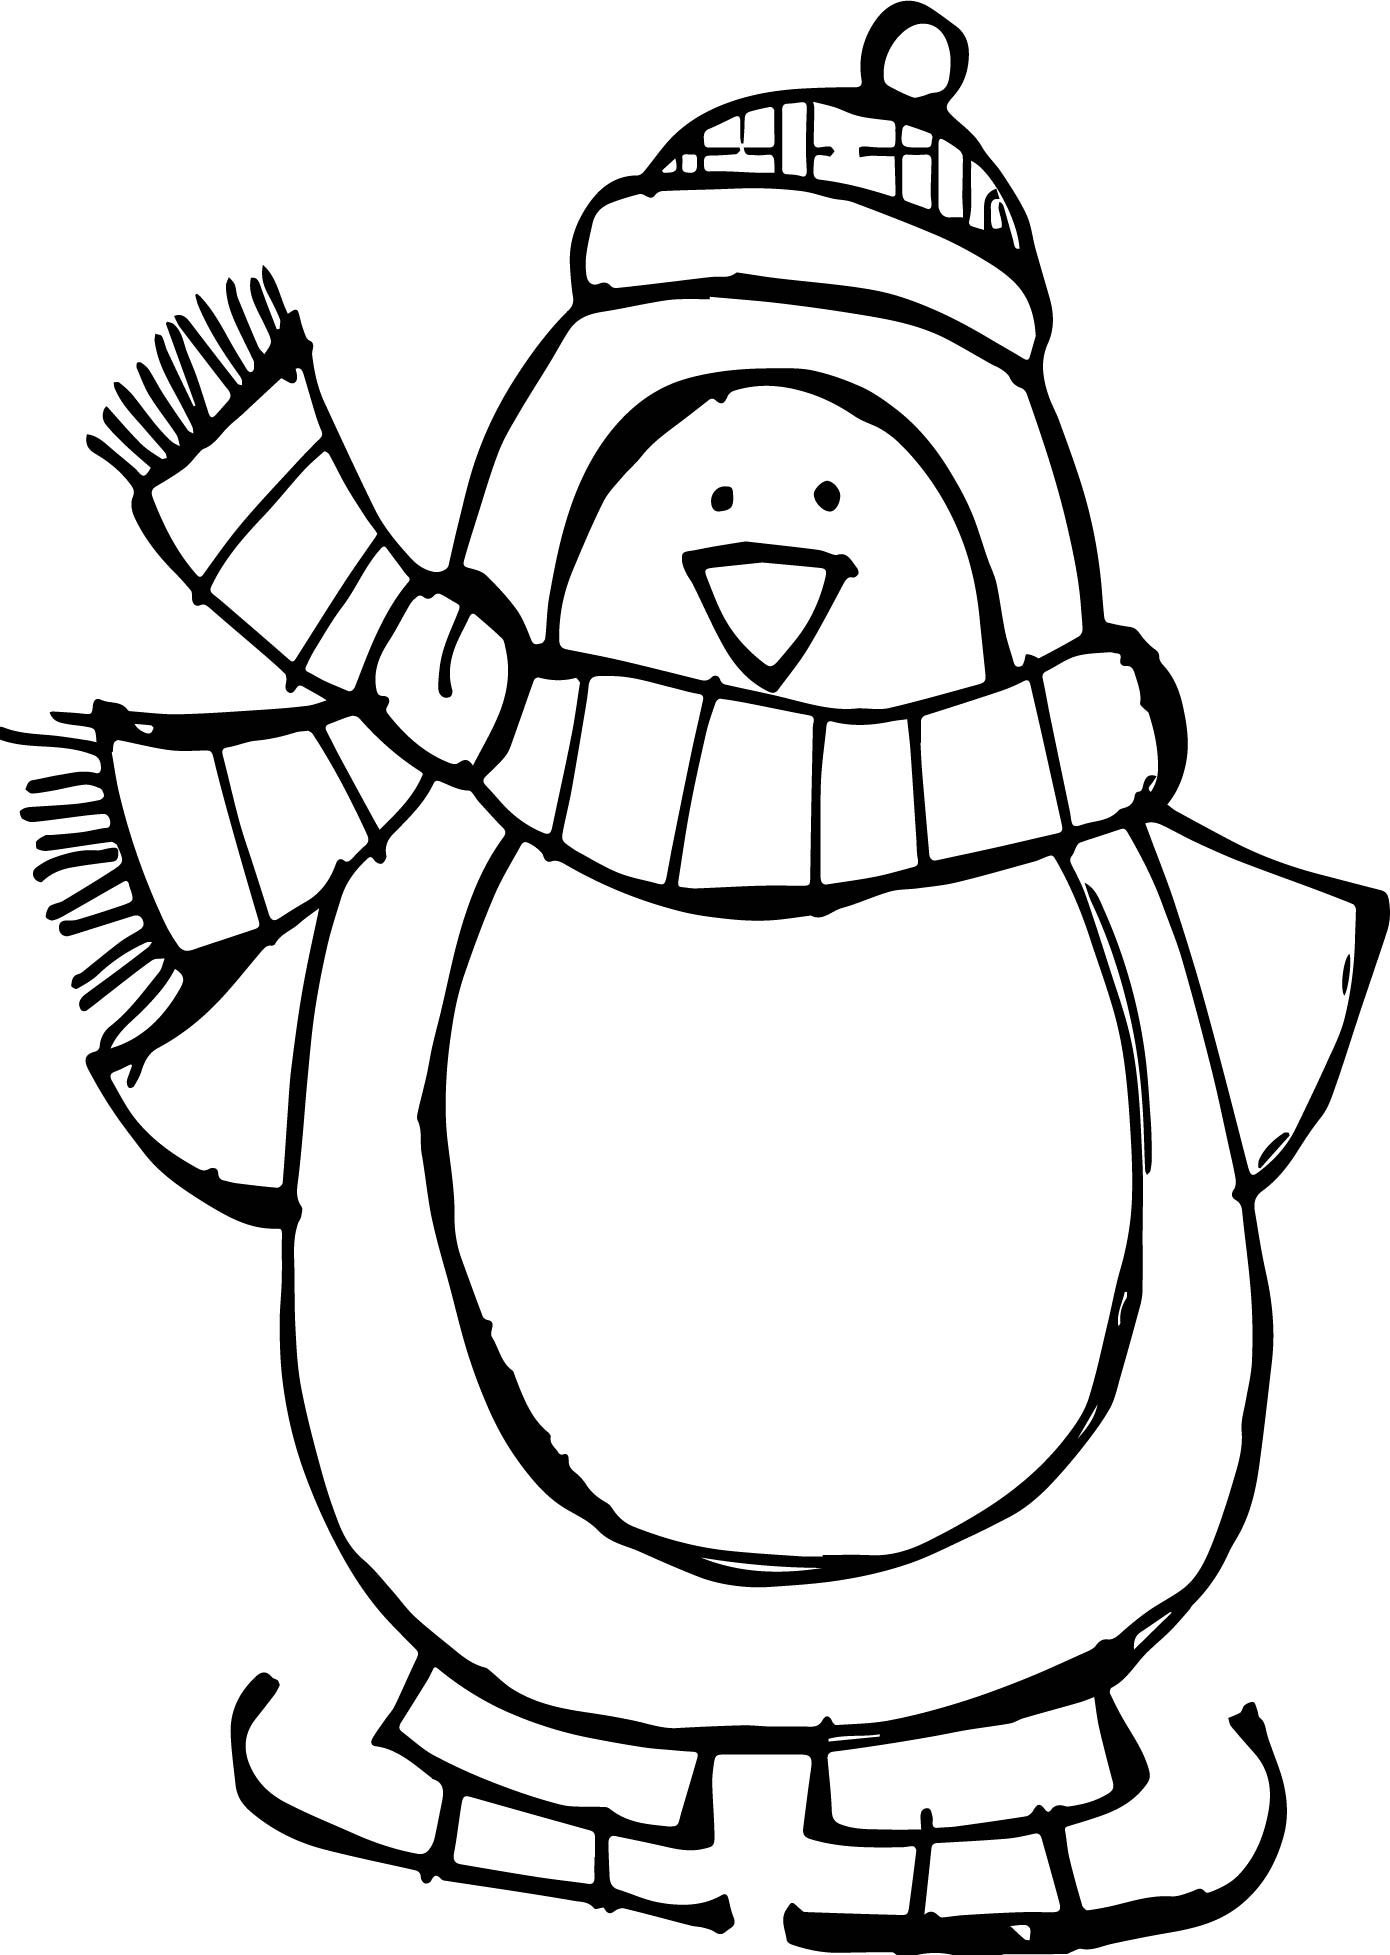 free printable penguin coloring pages christmas penguin drawing free download on clipartmag coloring printable pages free penguin